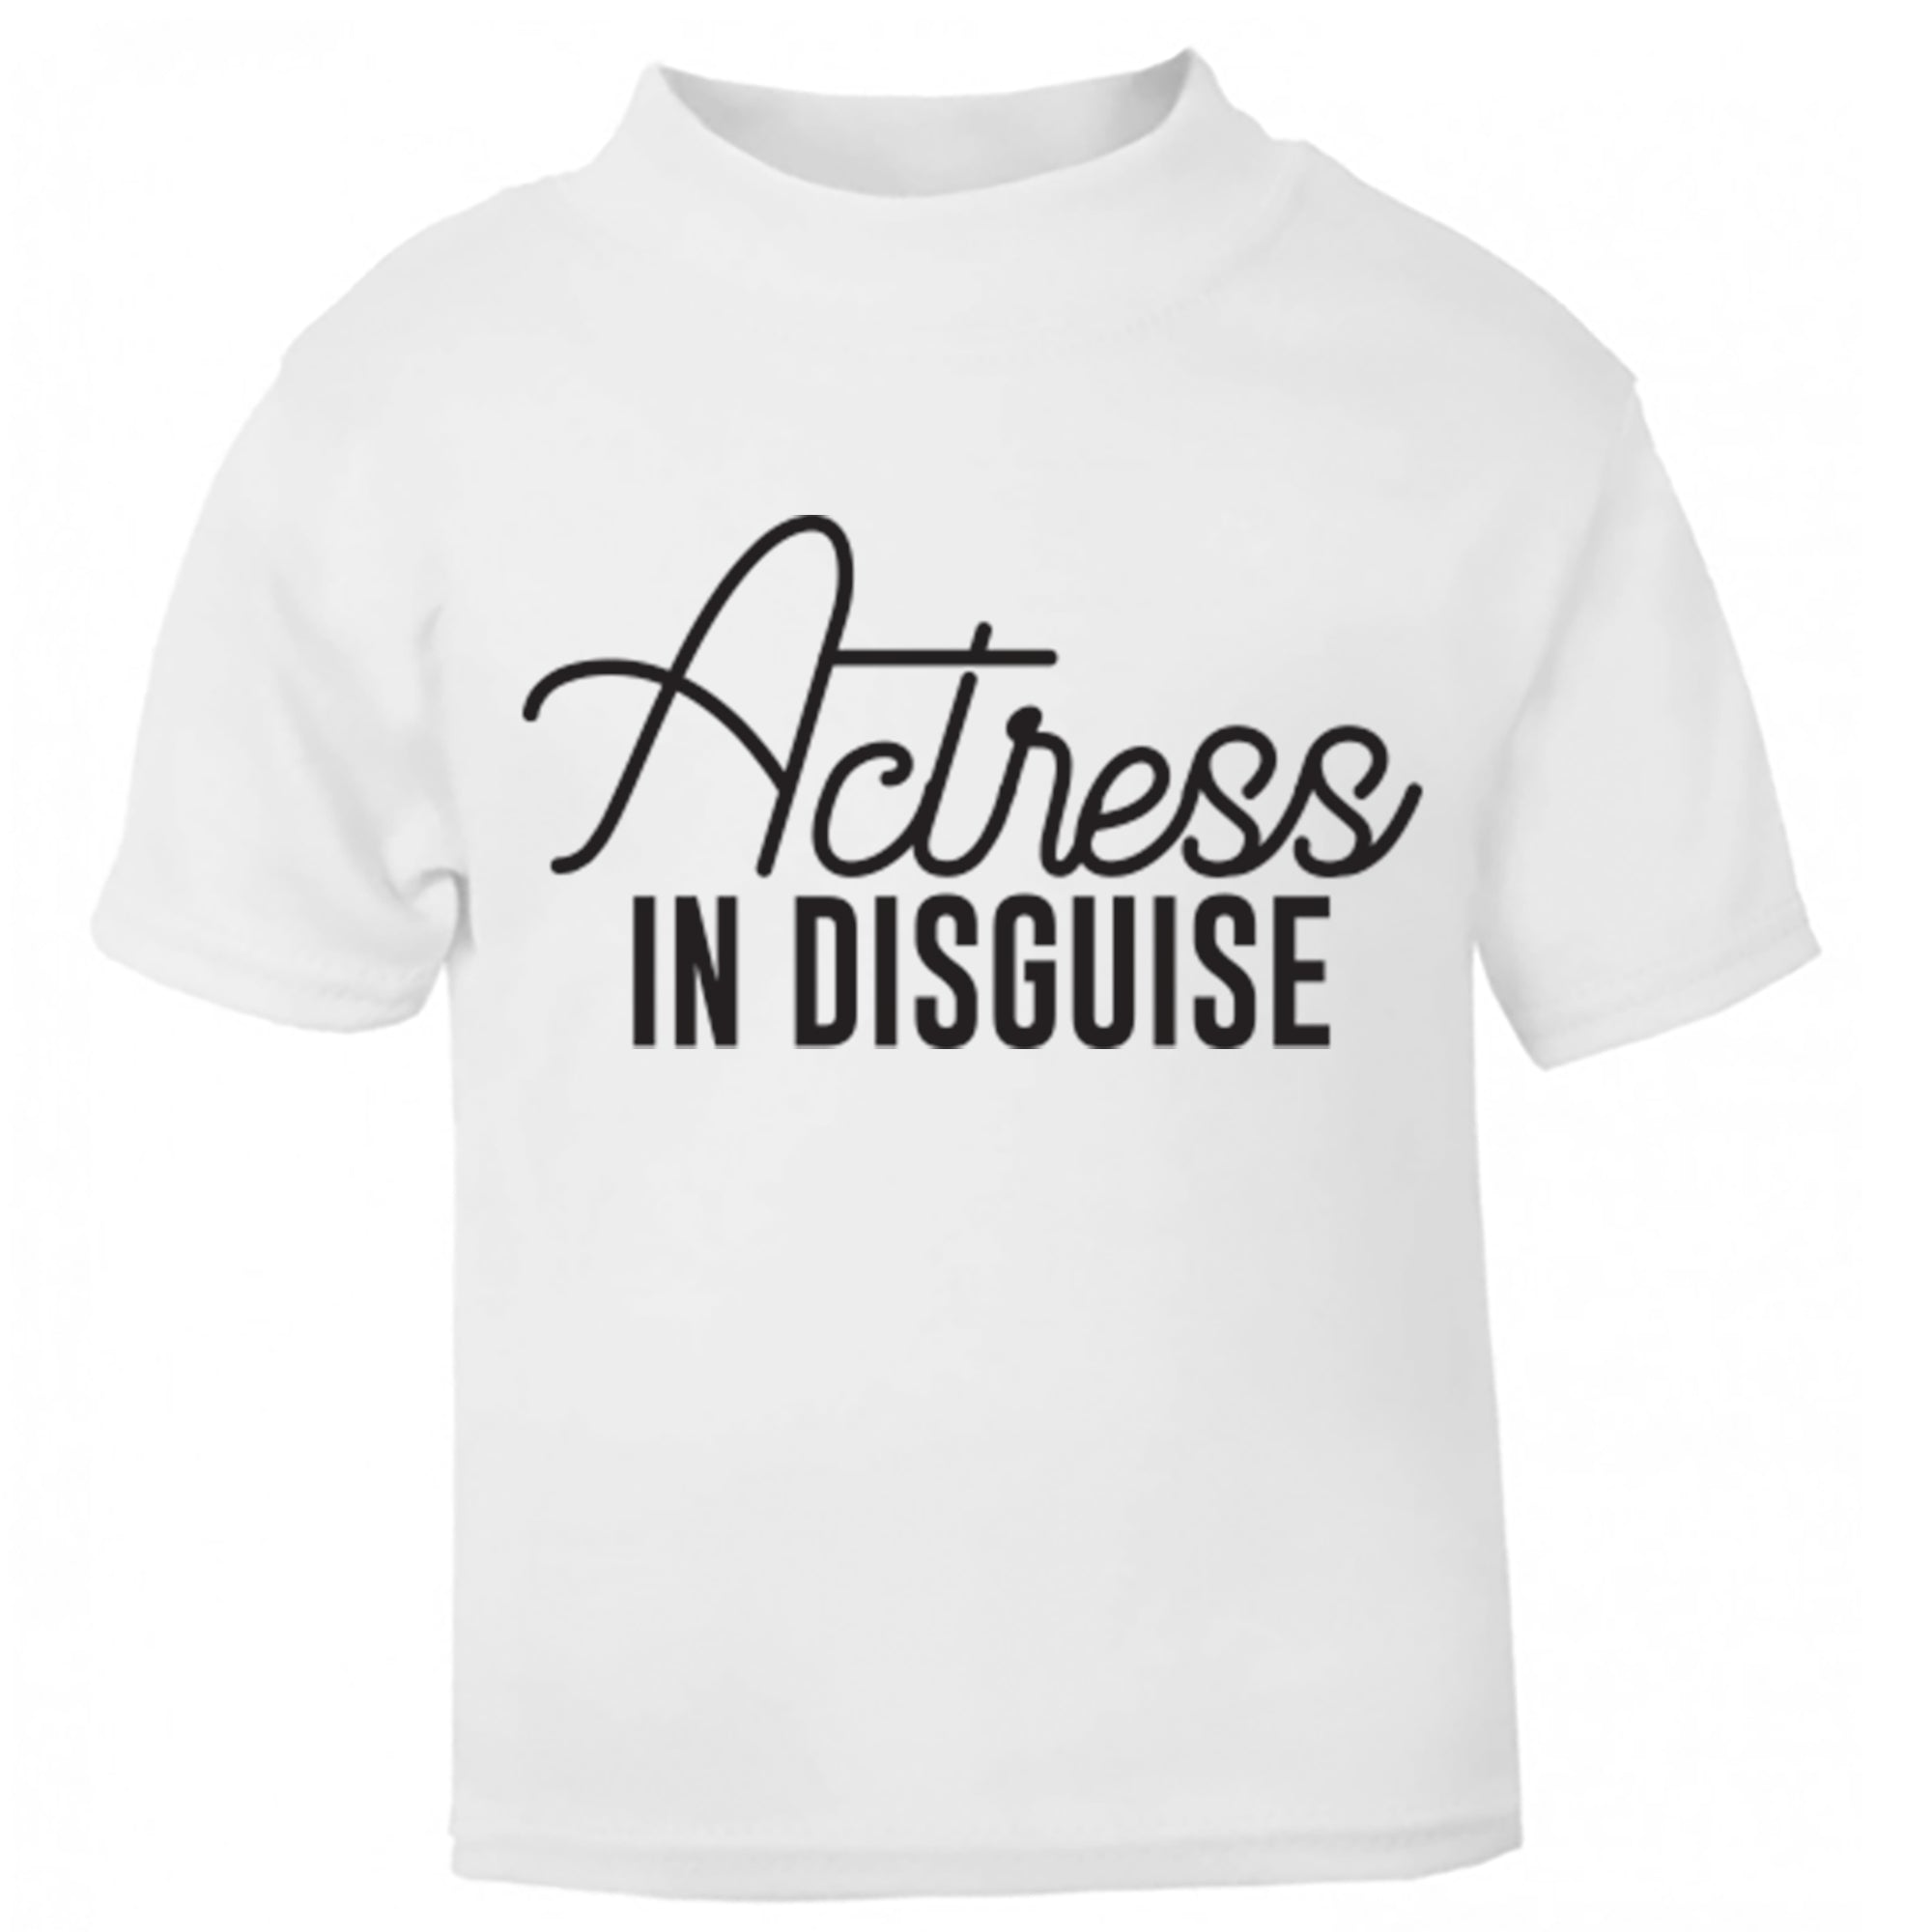 Actress In Disguise Childrens Ages 3/4-12/14 Unisex Fit T-Shirt S0046 - Illustrated Identity Ltd.